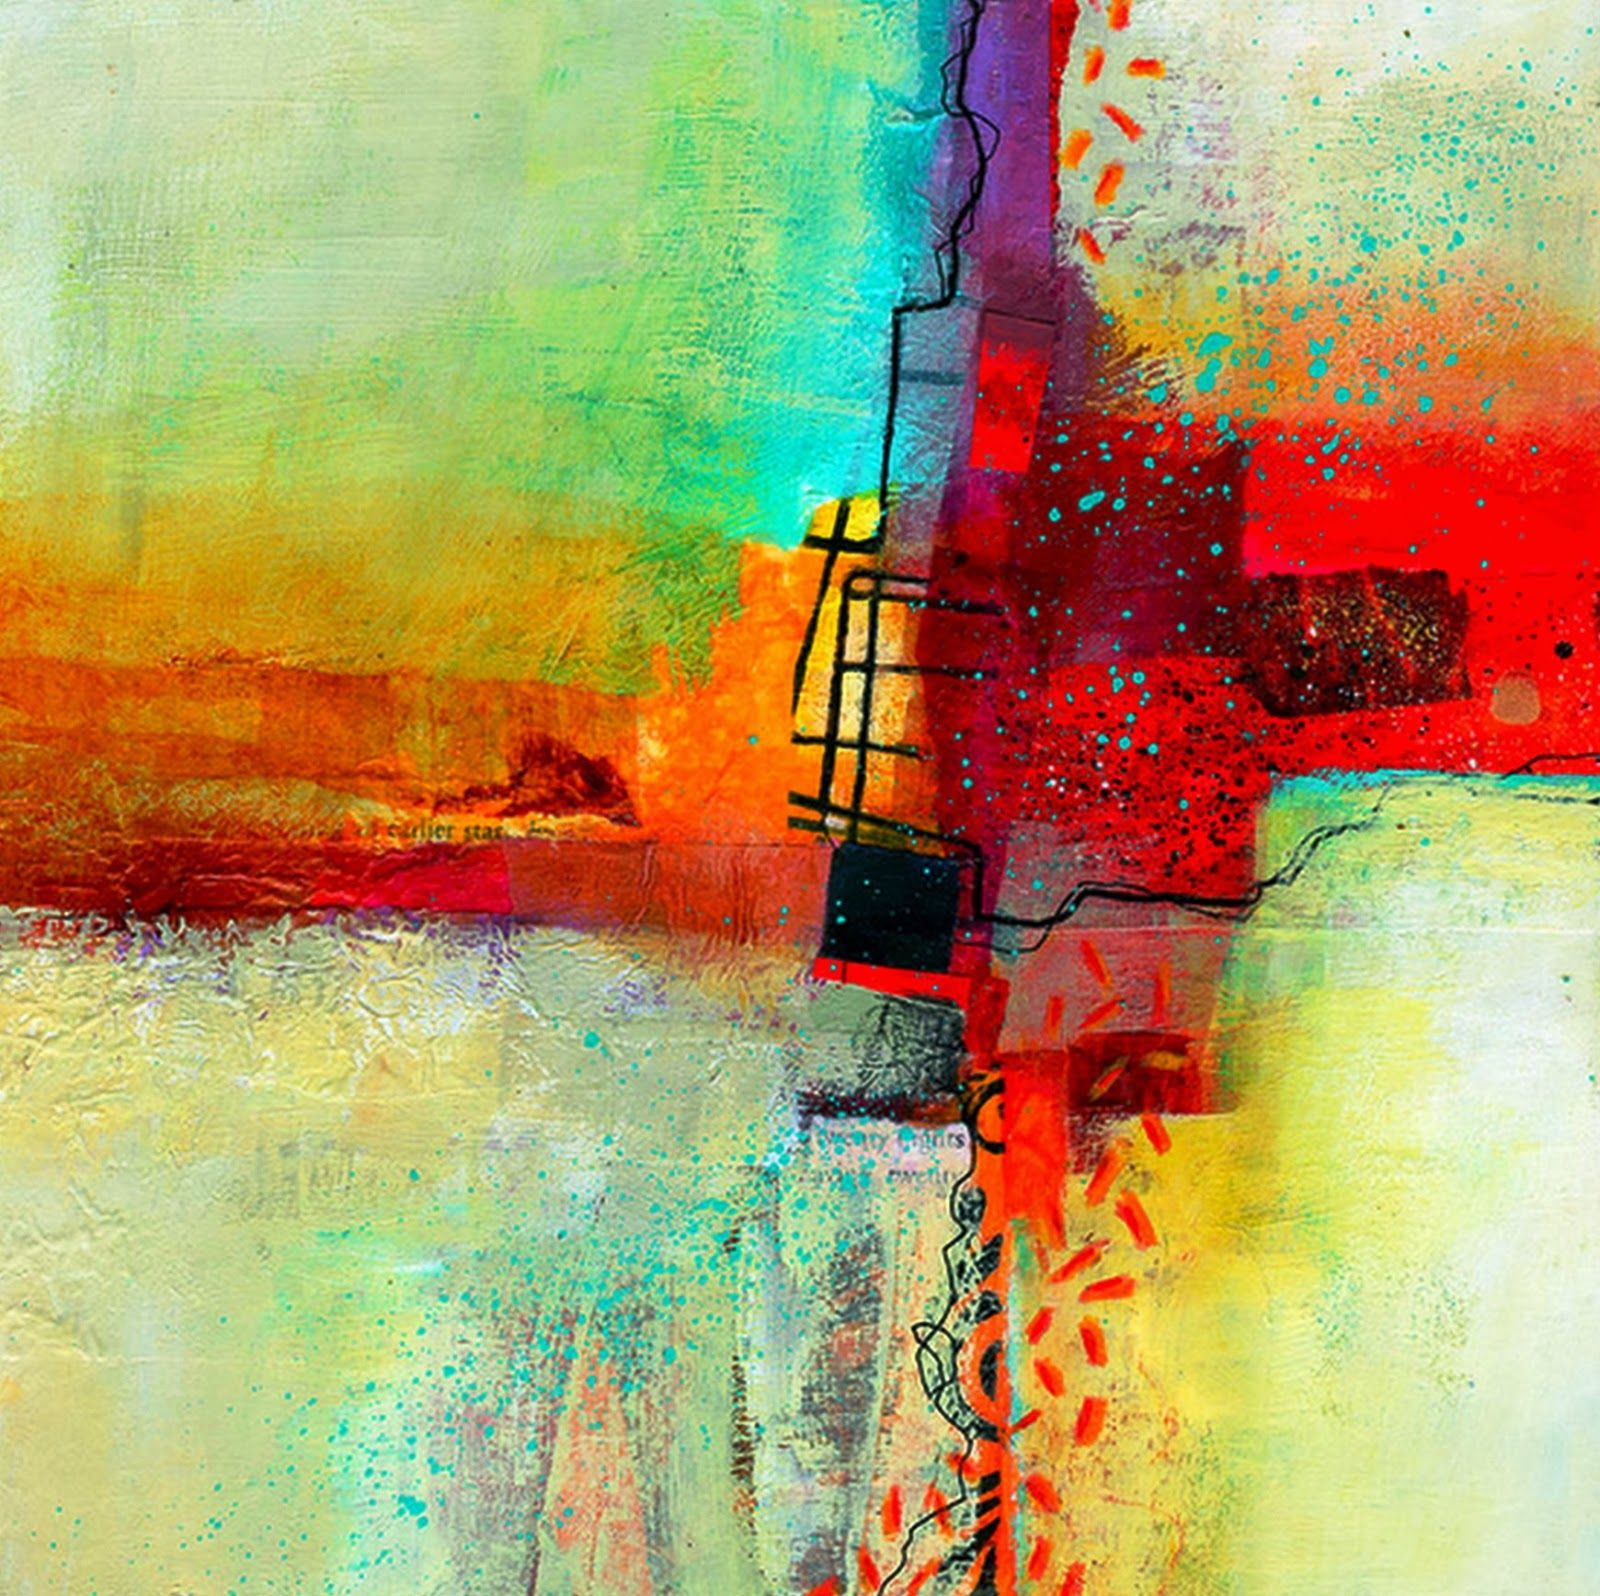 Pintura Contemporanea Pintura Abstracta Contemporánea Jane Davies Jane Estados